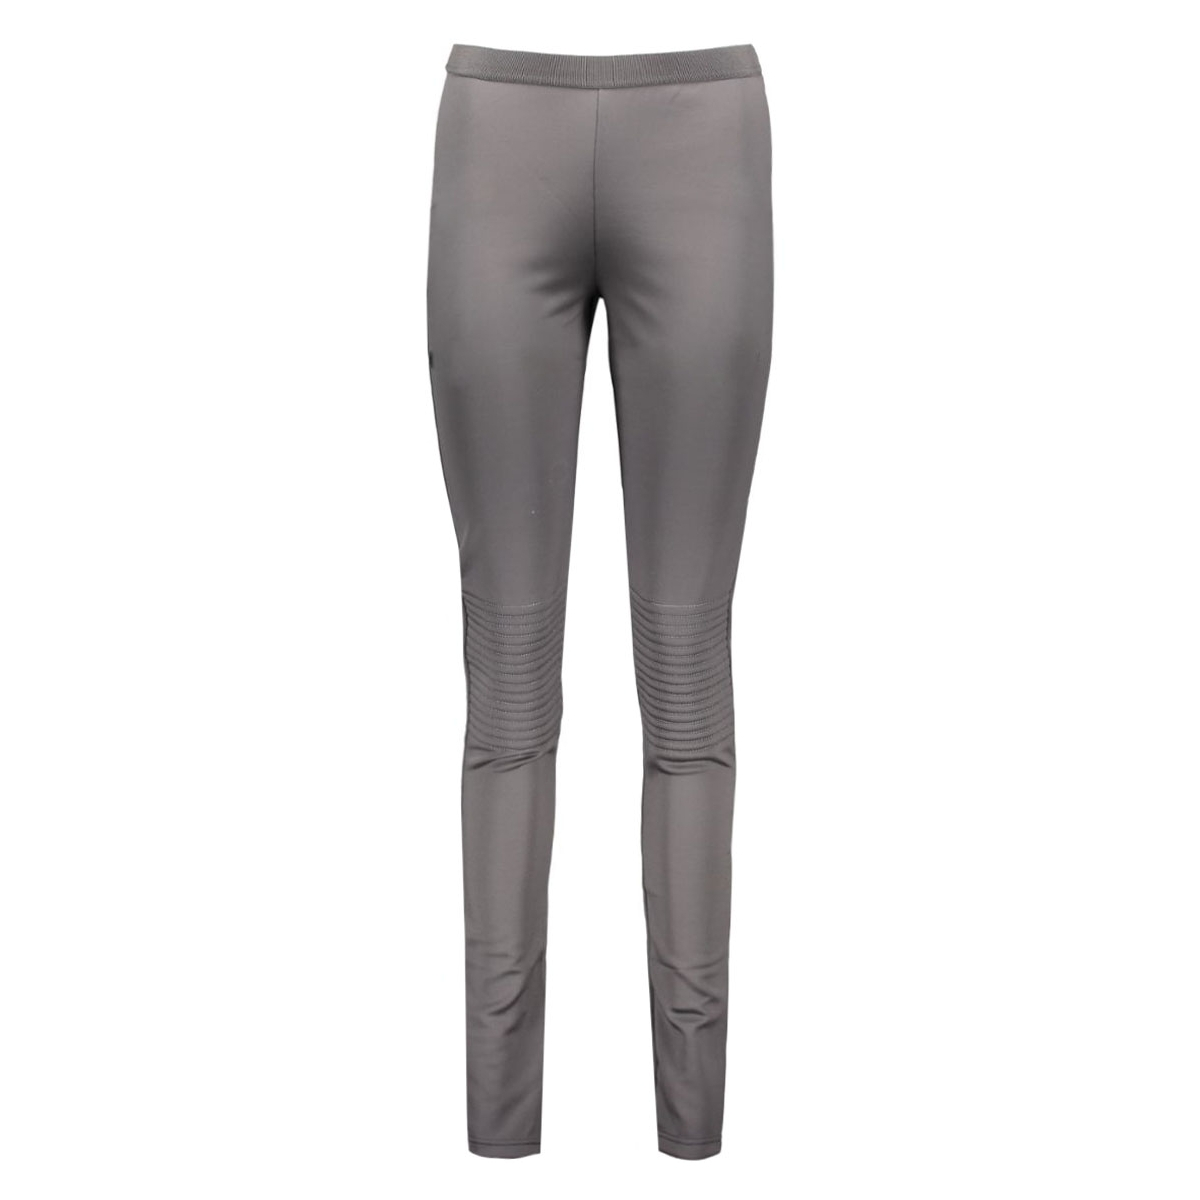 16wi022 10 days legging charcoal